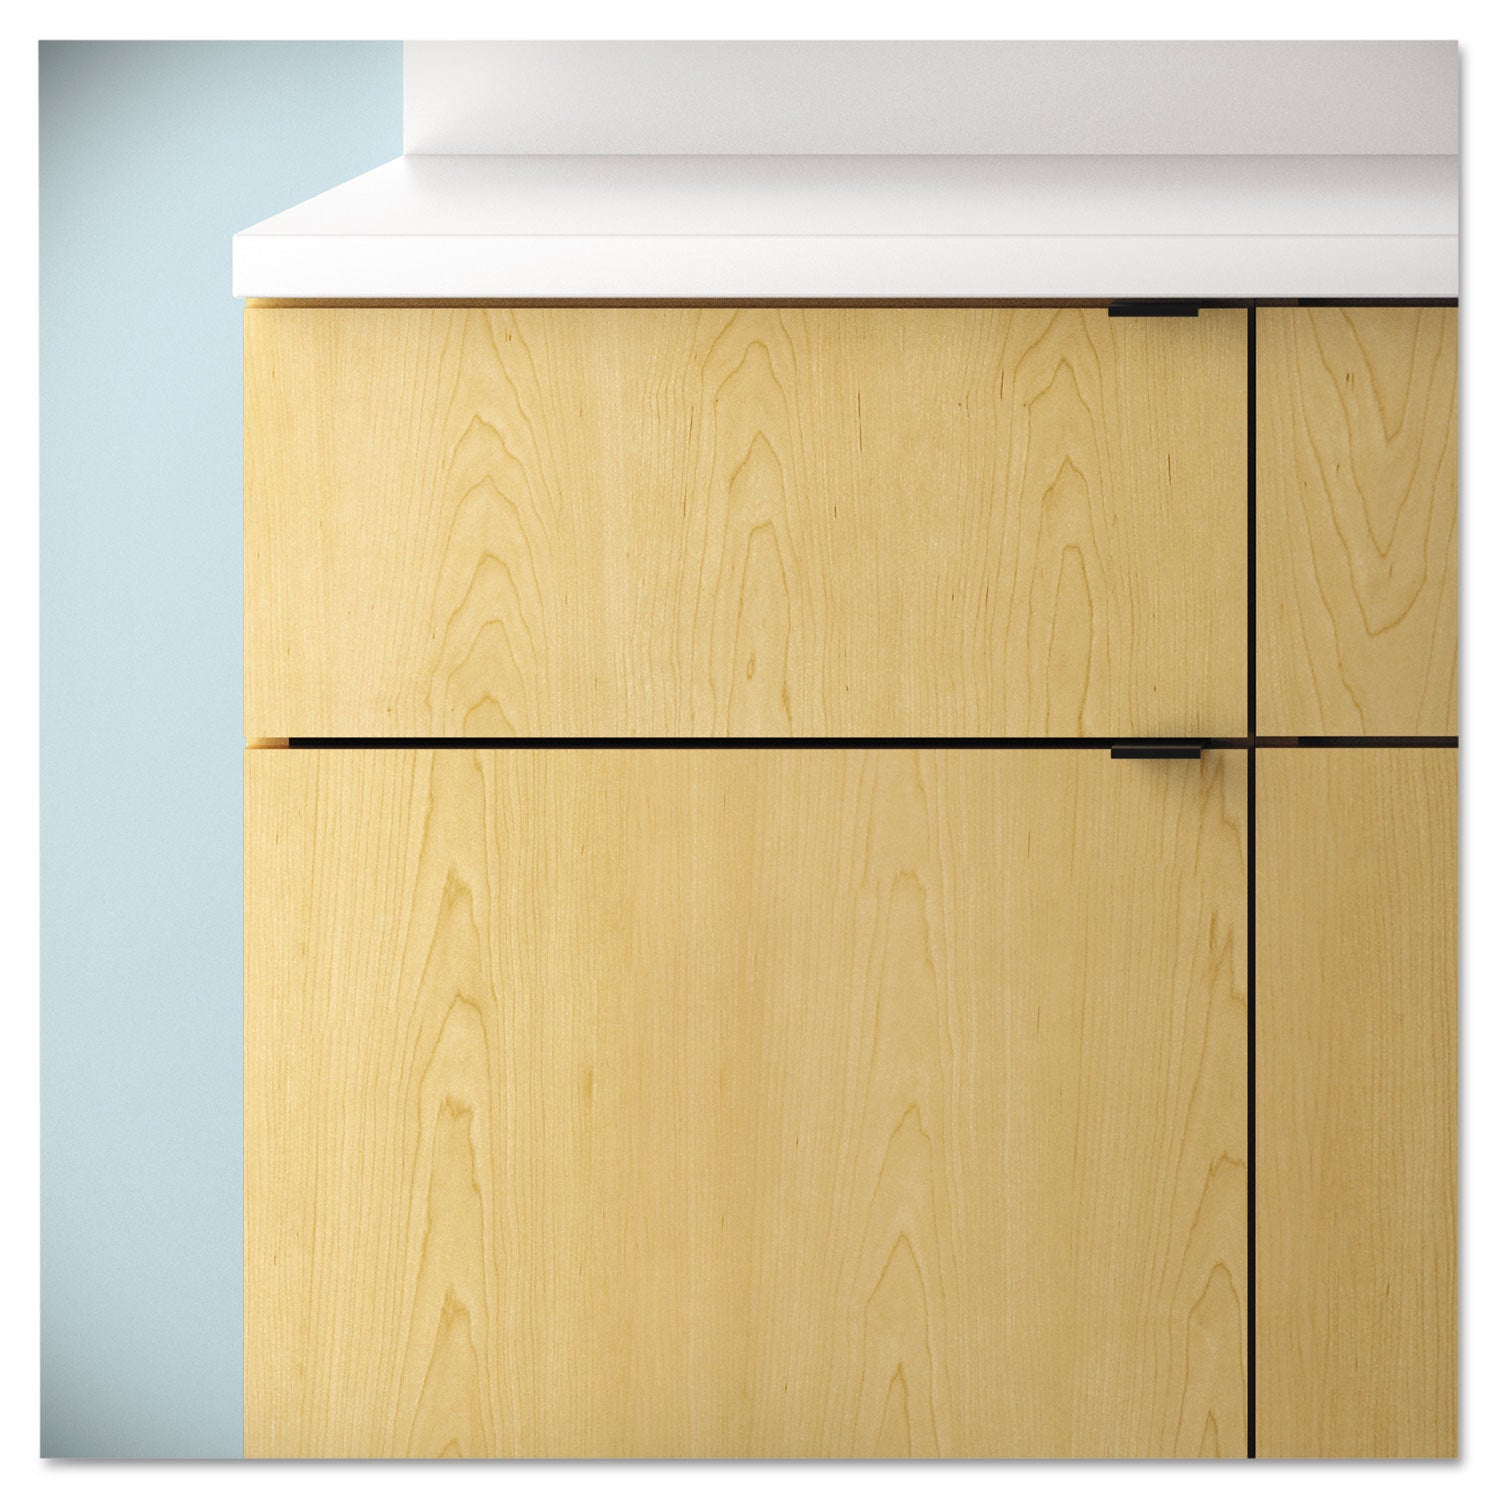 Shop HON Hospitality Single Base Cabinet Door/Drawer 18 Inch Wide X 24 Inch  Deep X 36 Inch High Natural Maple   Free Shipping Today   Overstock    13918974